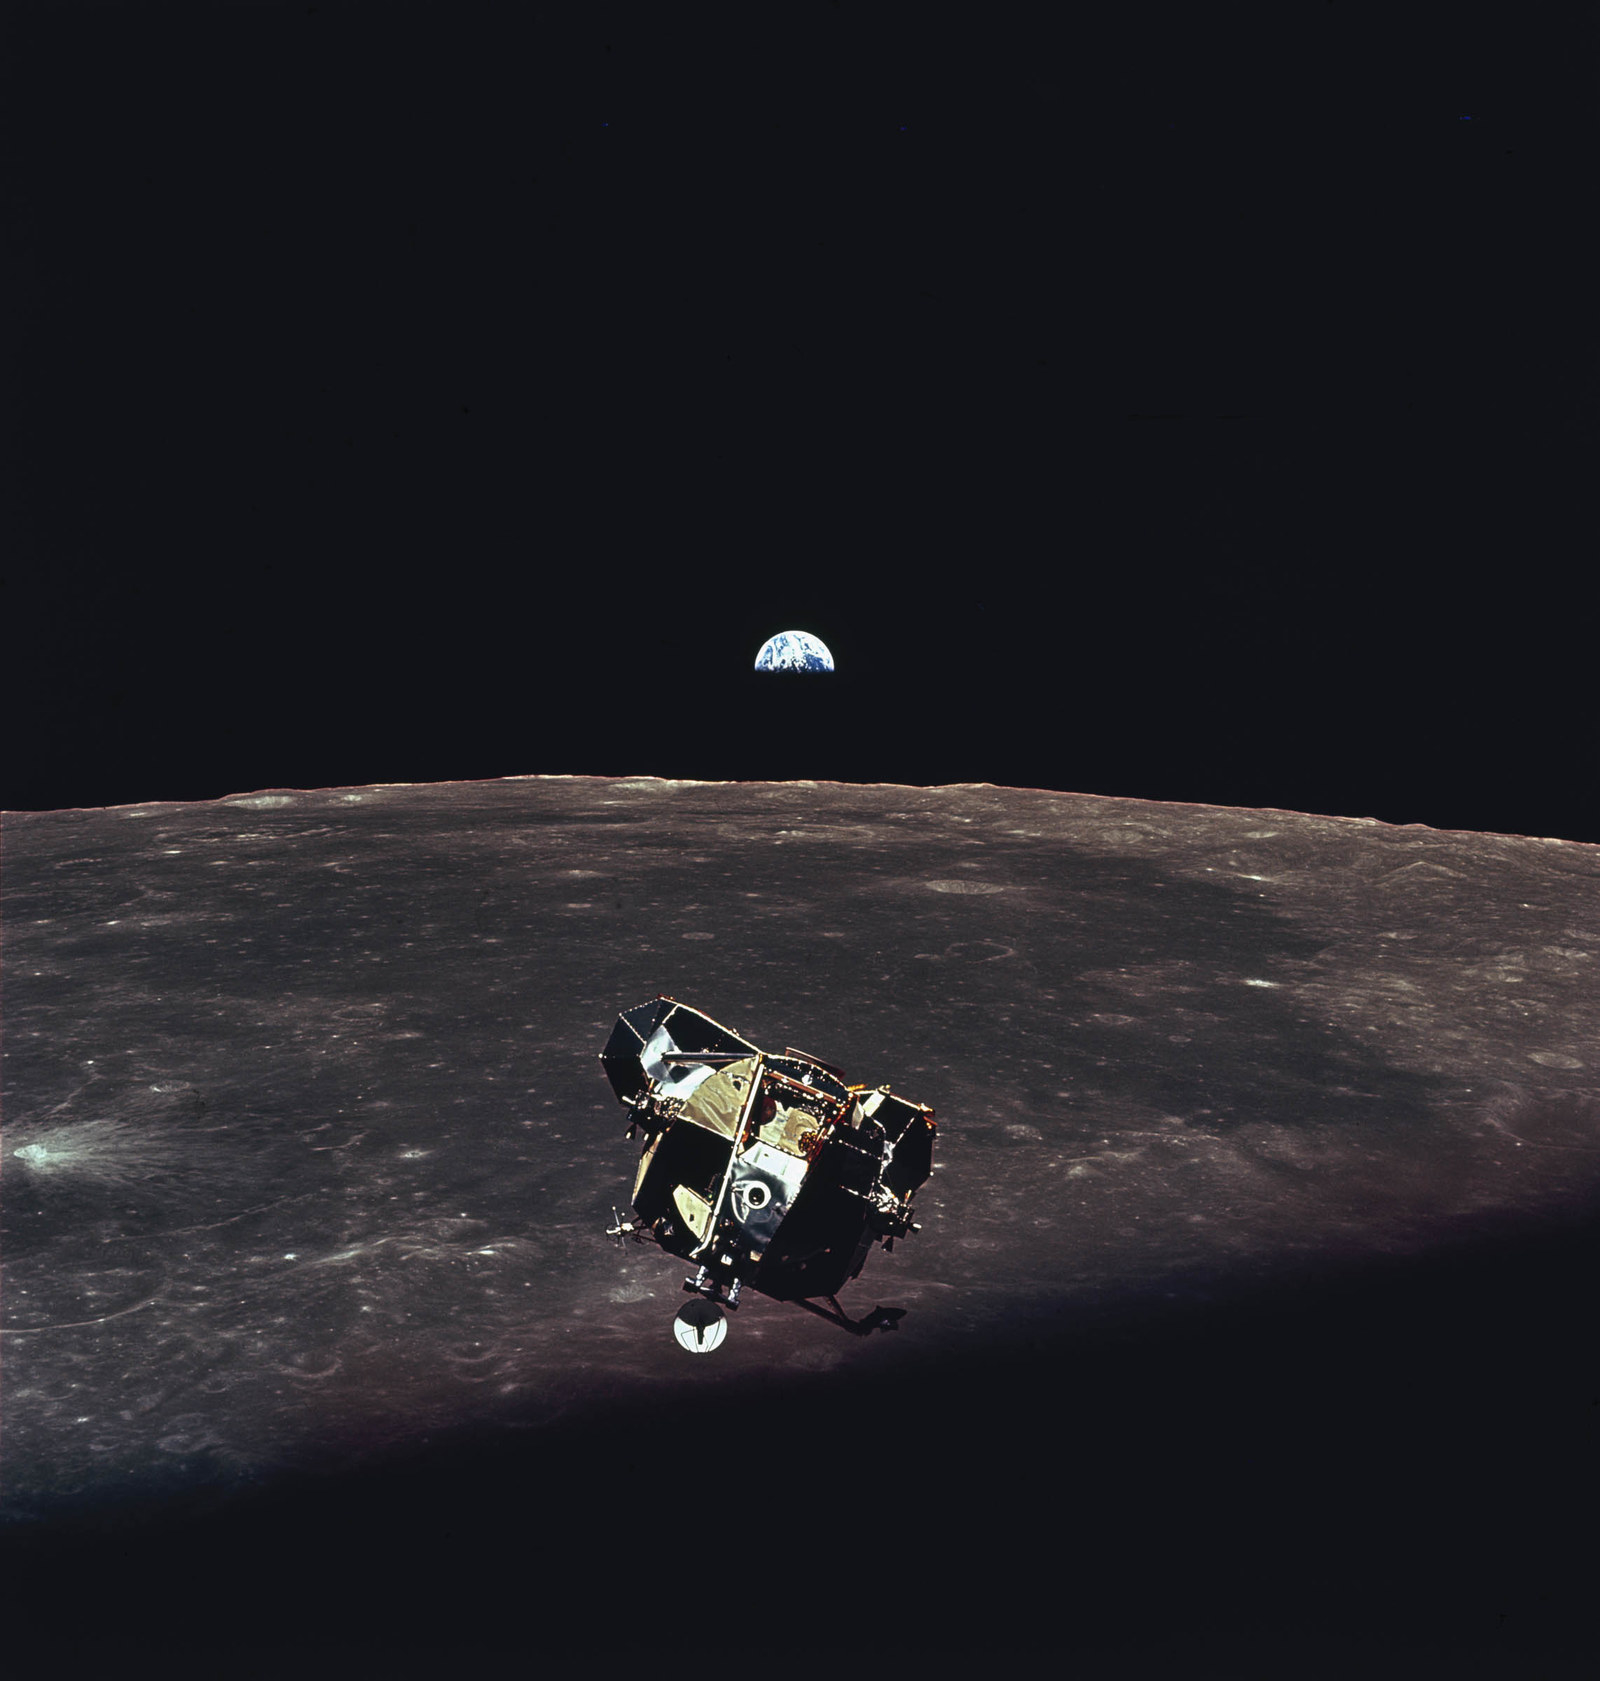 1969 The Apollo 11 lunar module ascent stage photographed from the command service module during rendezvous in lunar orbit. Planet Earth is visible above the lunar horizon.